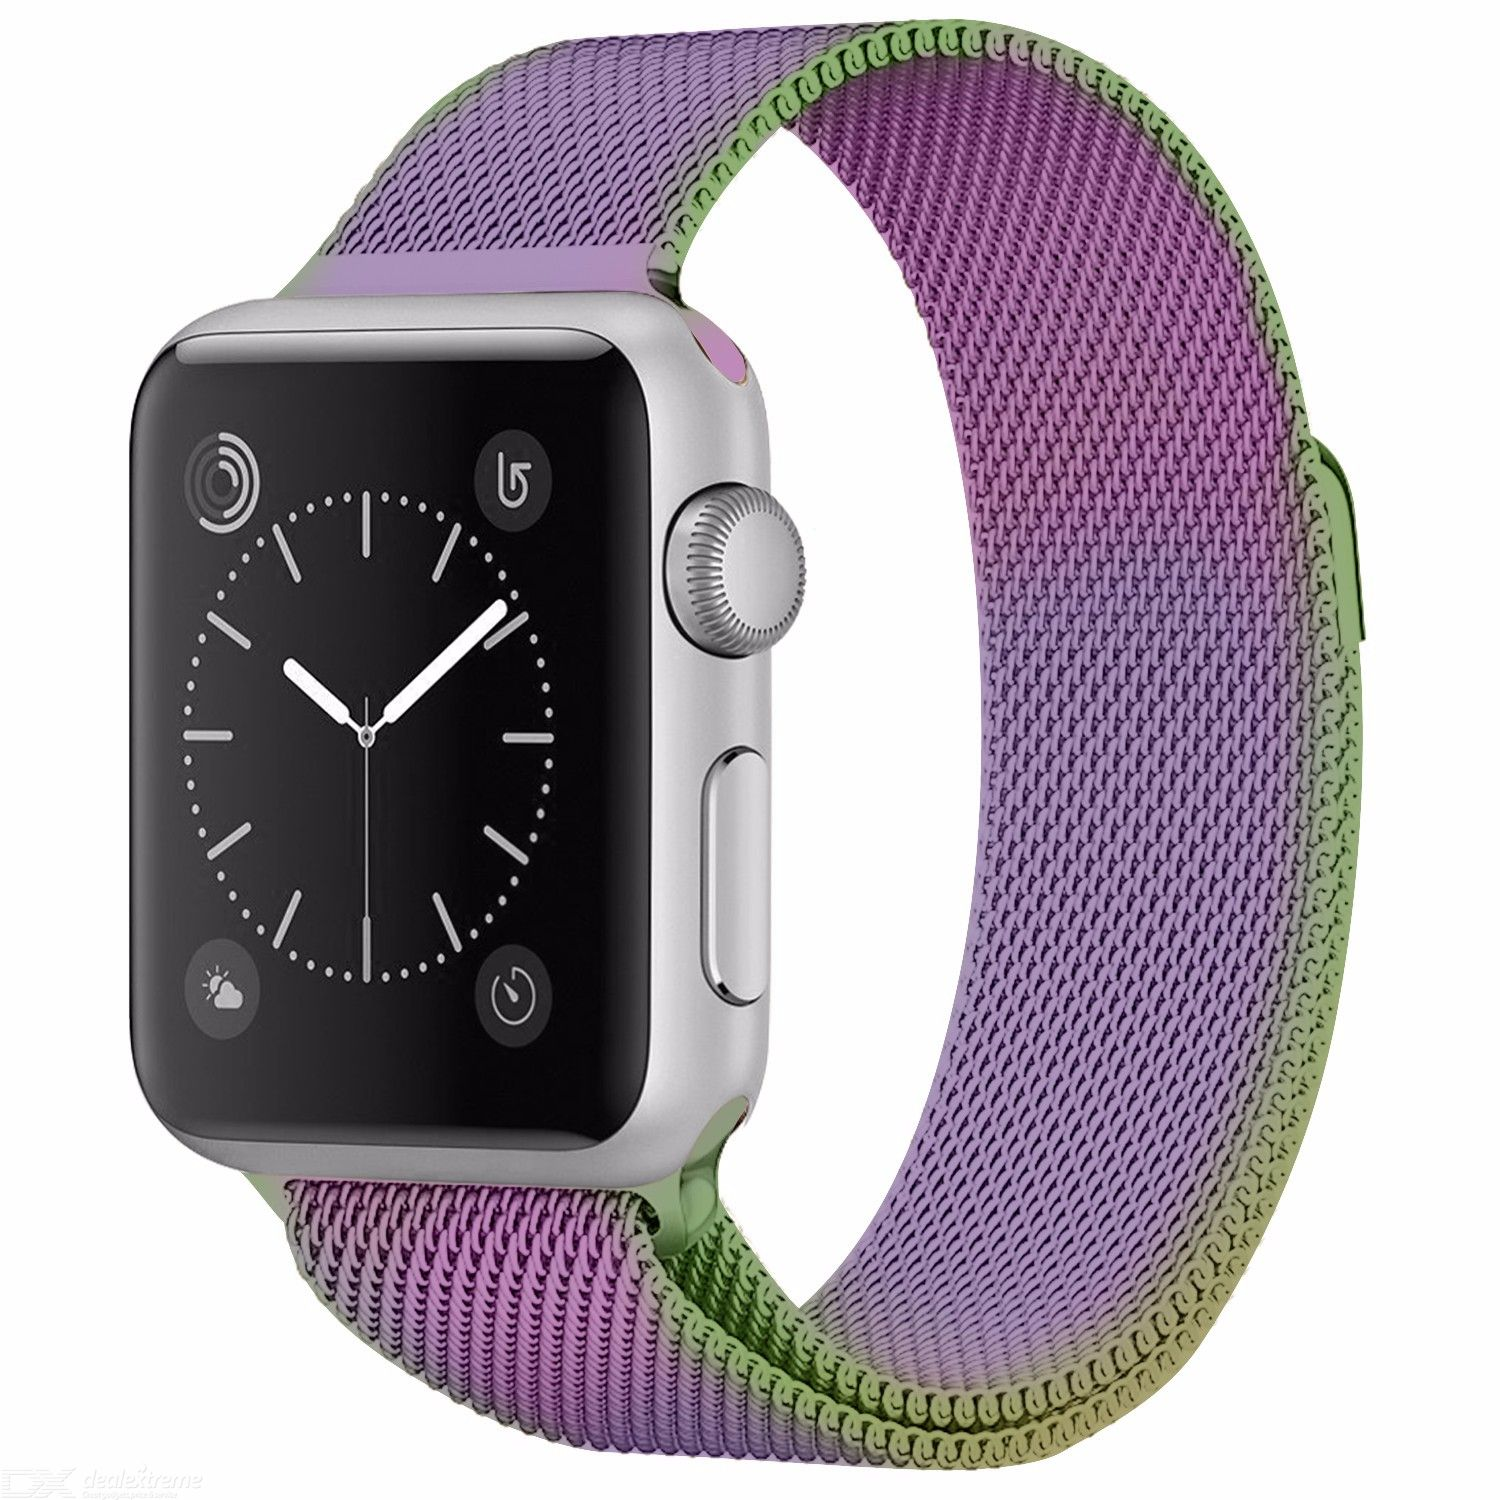 Milanese Loop Strap For Apple Watch 44mm 40mm 38mm 42mm, Magnetic Buckle Stainless Steel Watch Replacement Band for iWatch 12345